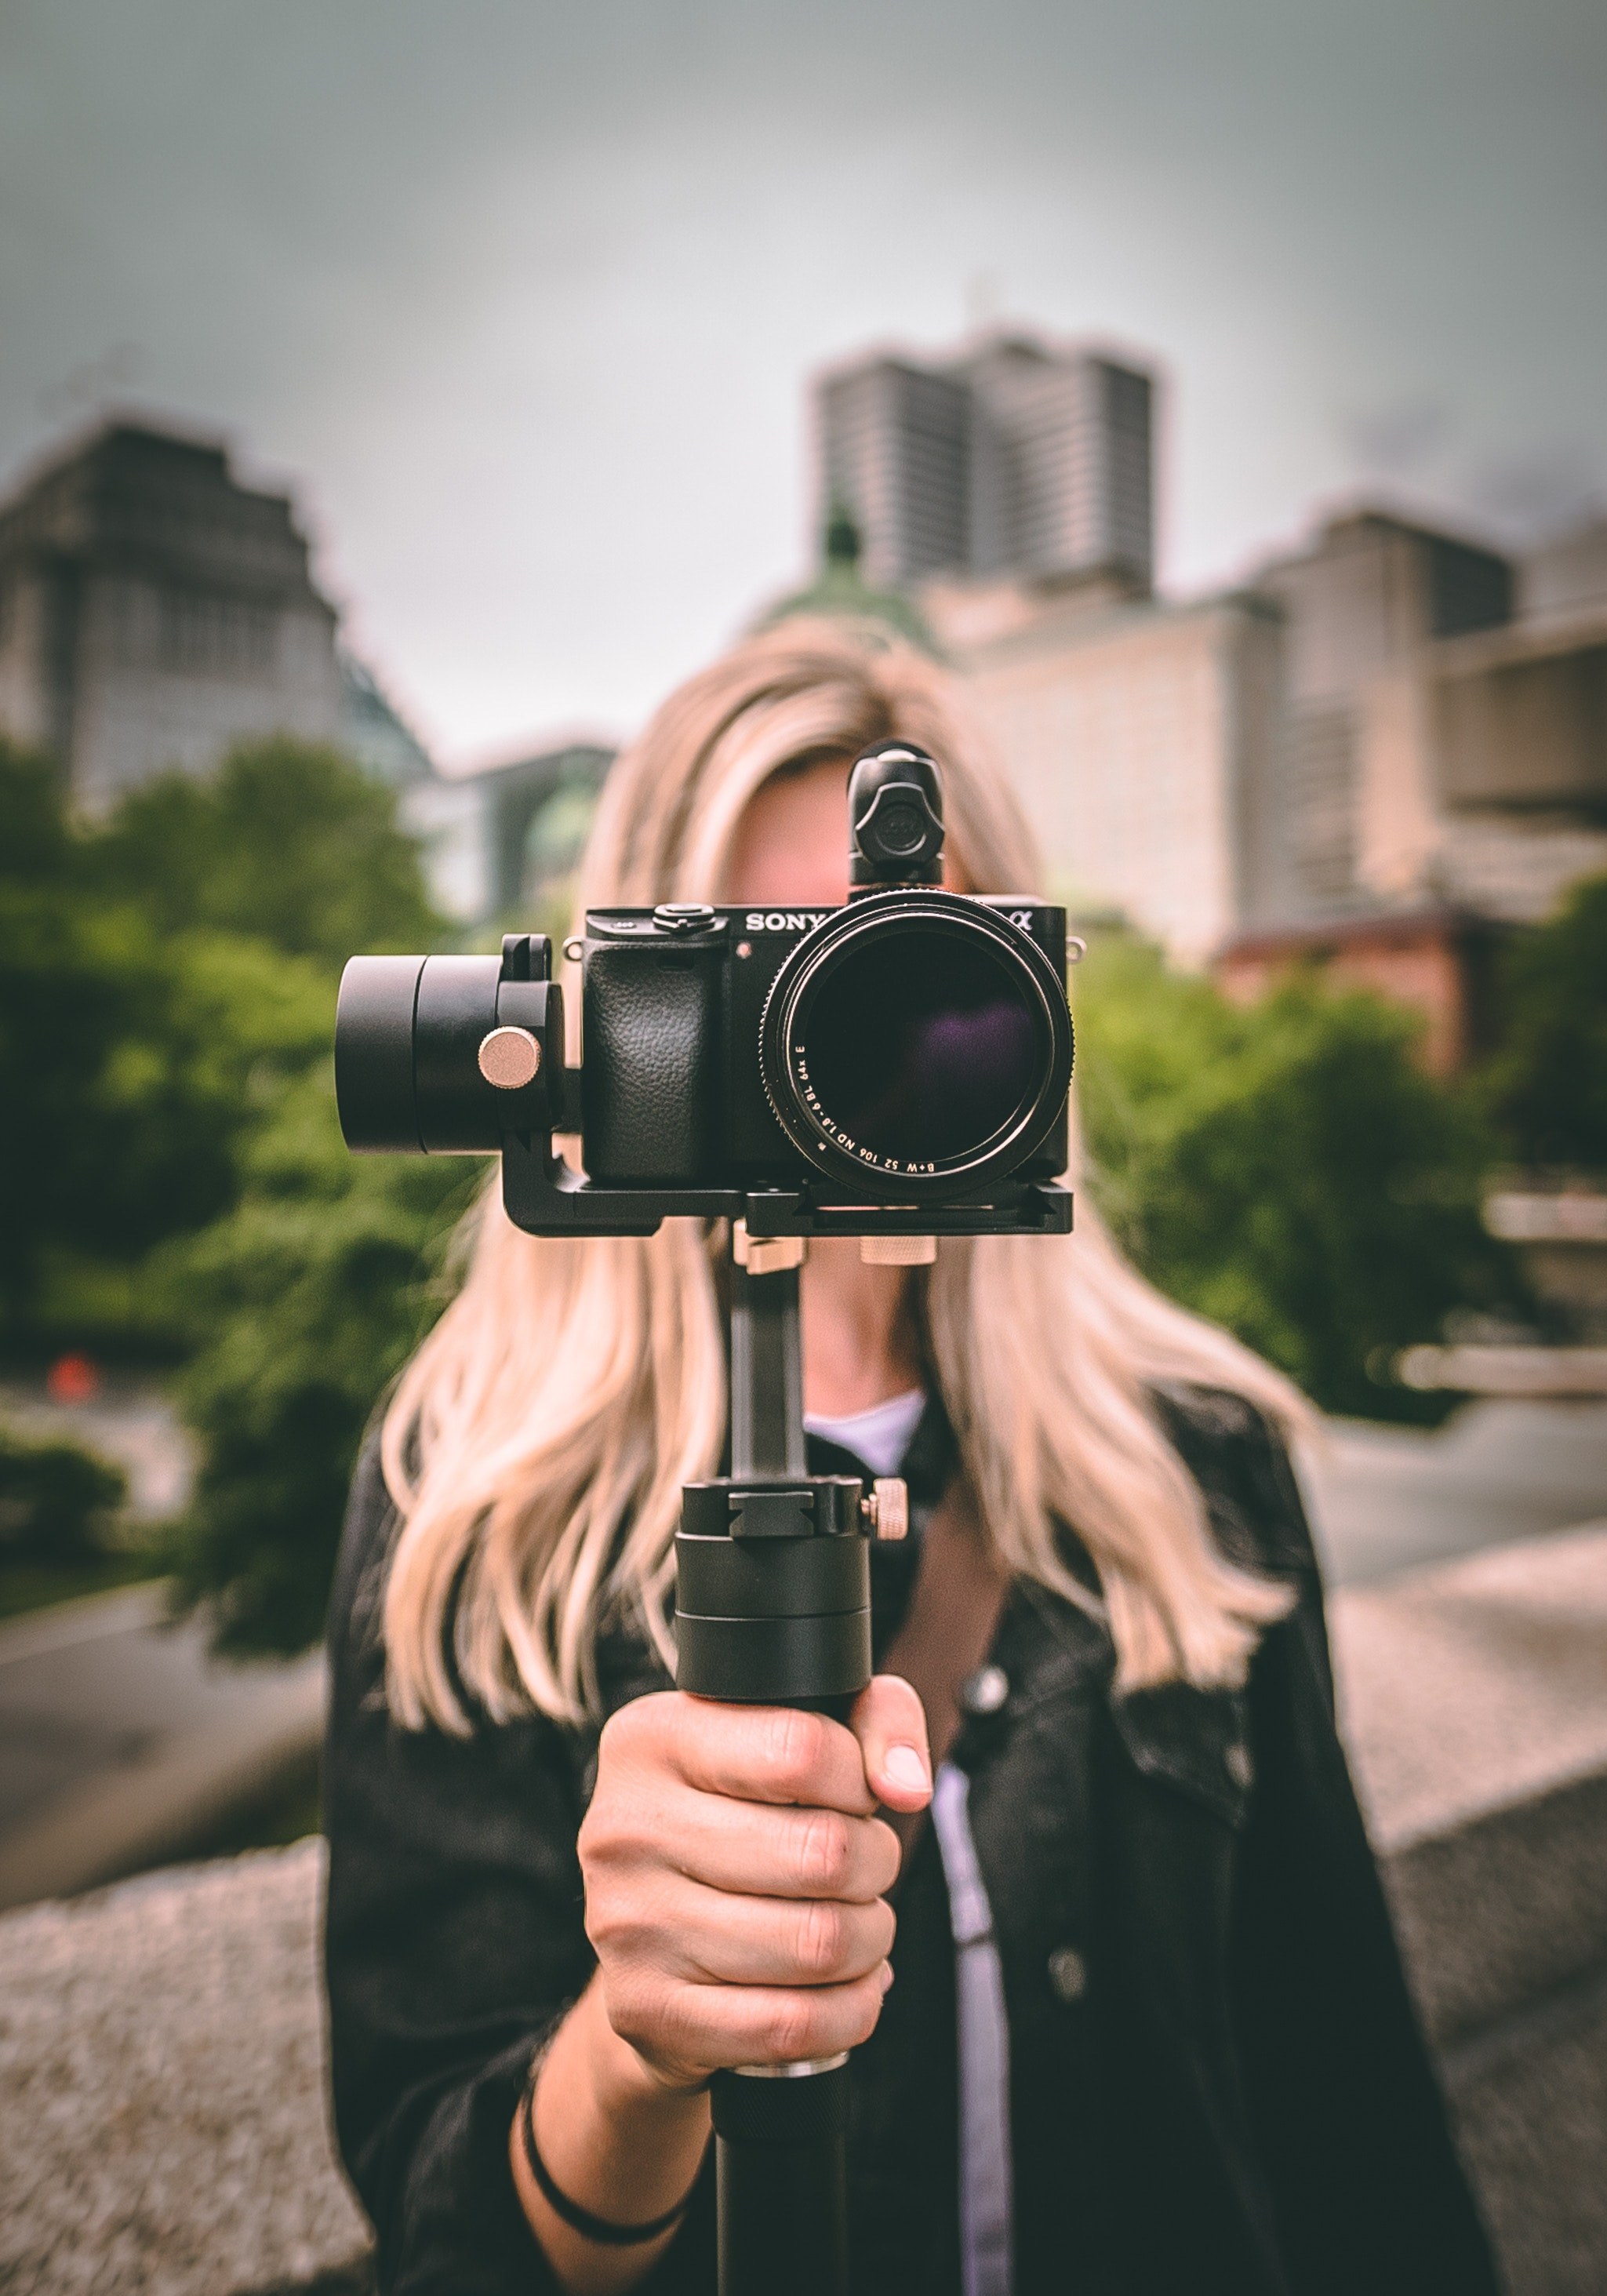 You can't shoot good video with a shaky camera, which is why a tripod and / or a gimbal image stabilizer is a vital piece of video marketing equipment. Photo credit: William Bayreuther